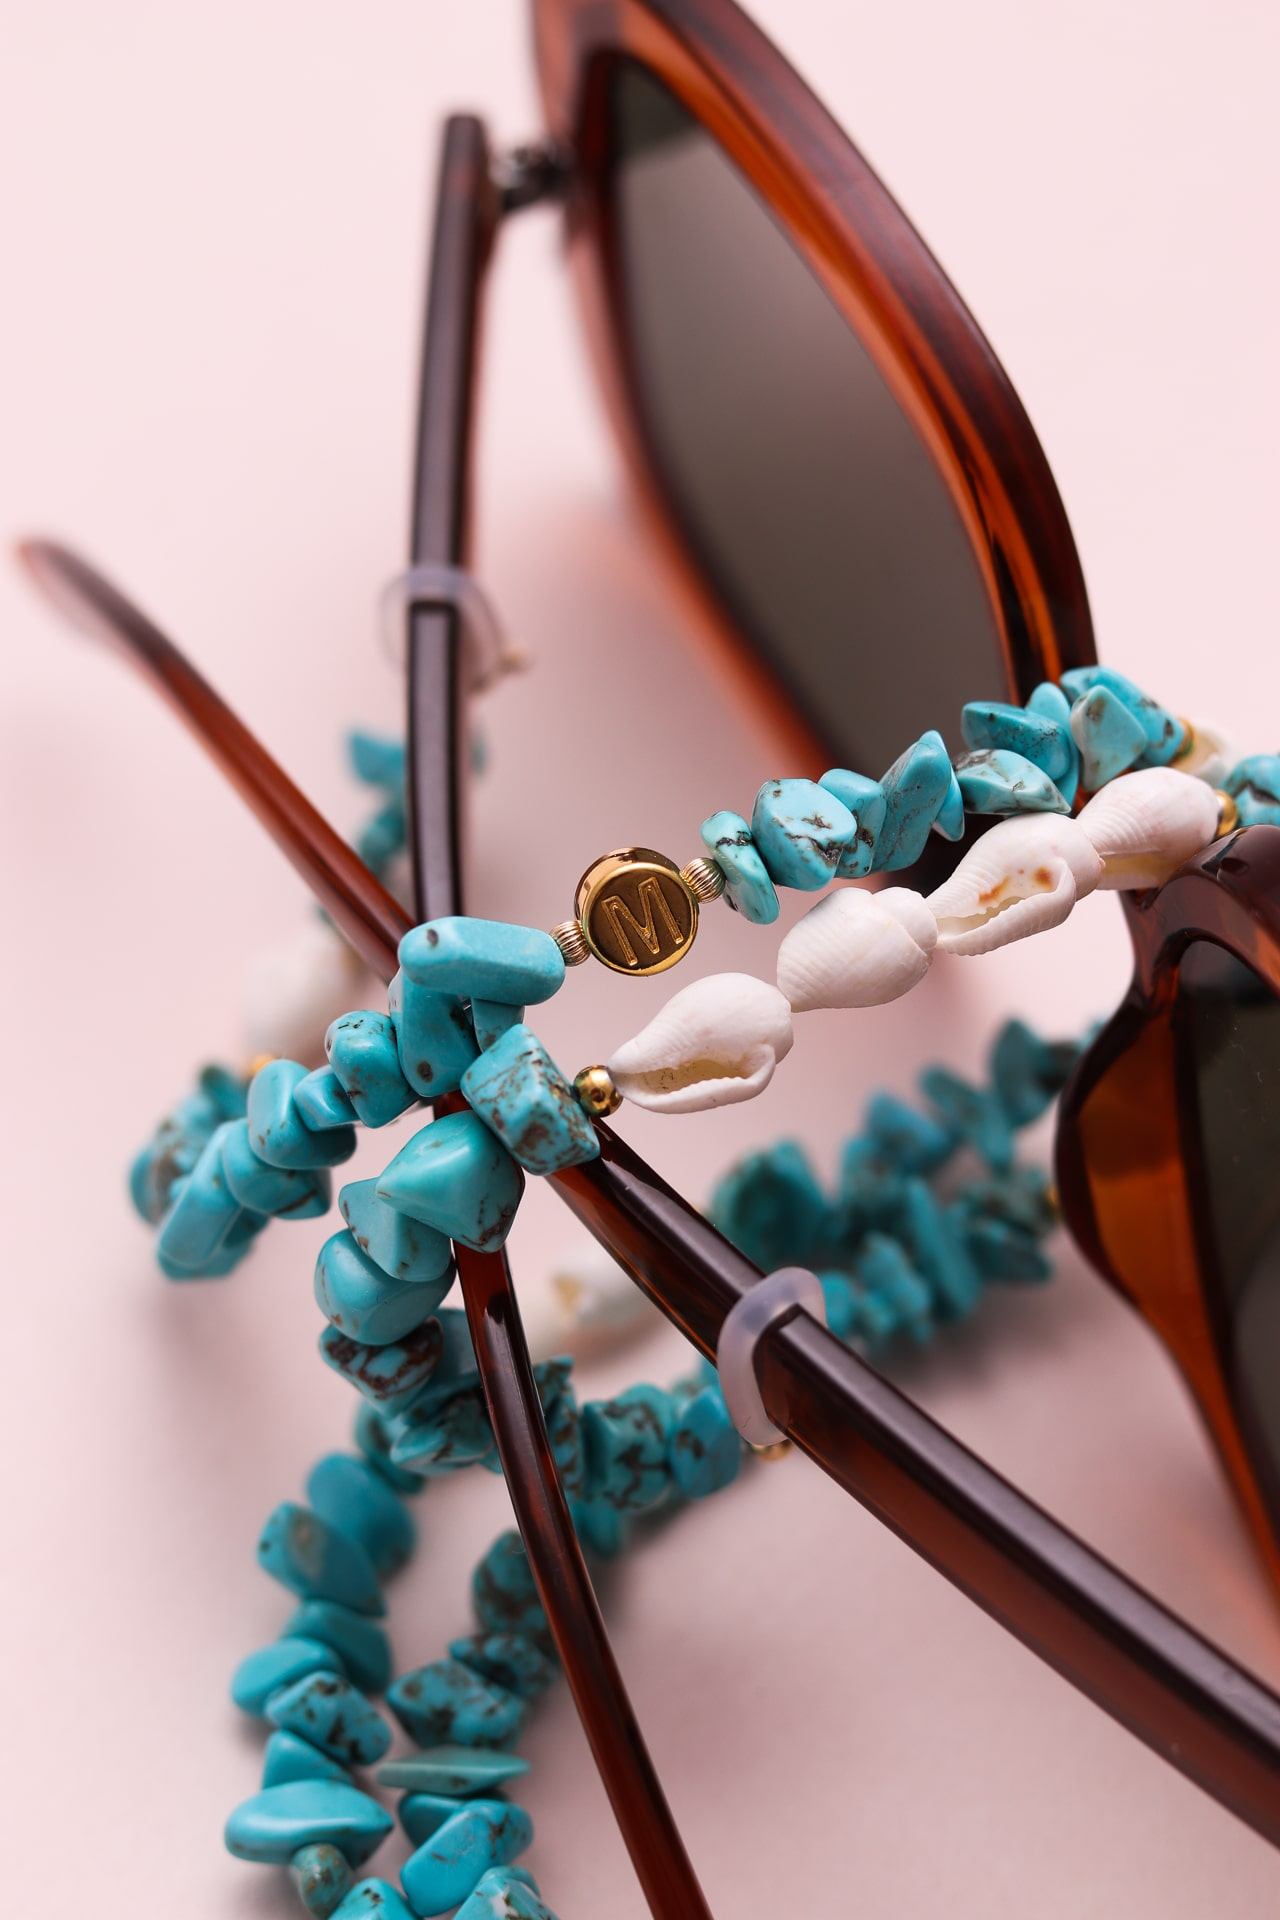 Chaine pour lunettes blanche et turquoise coquillage